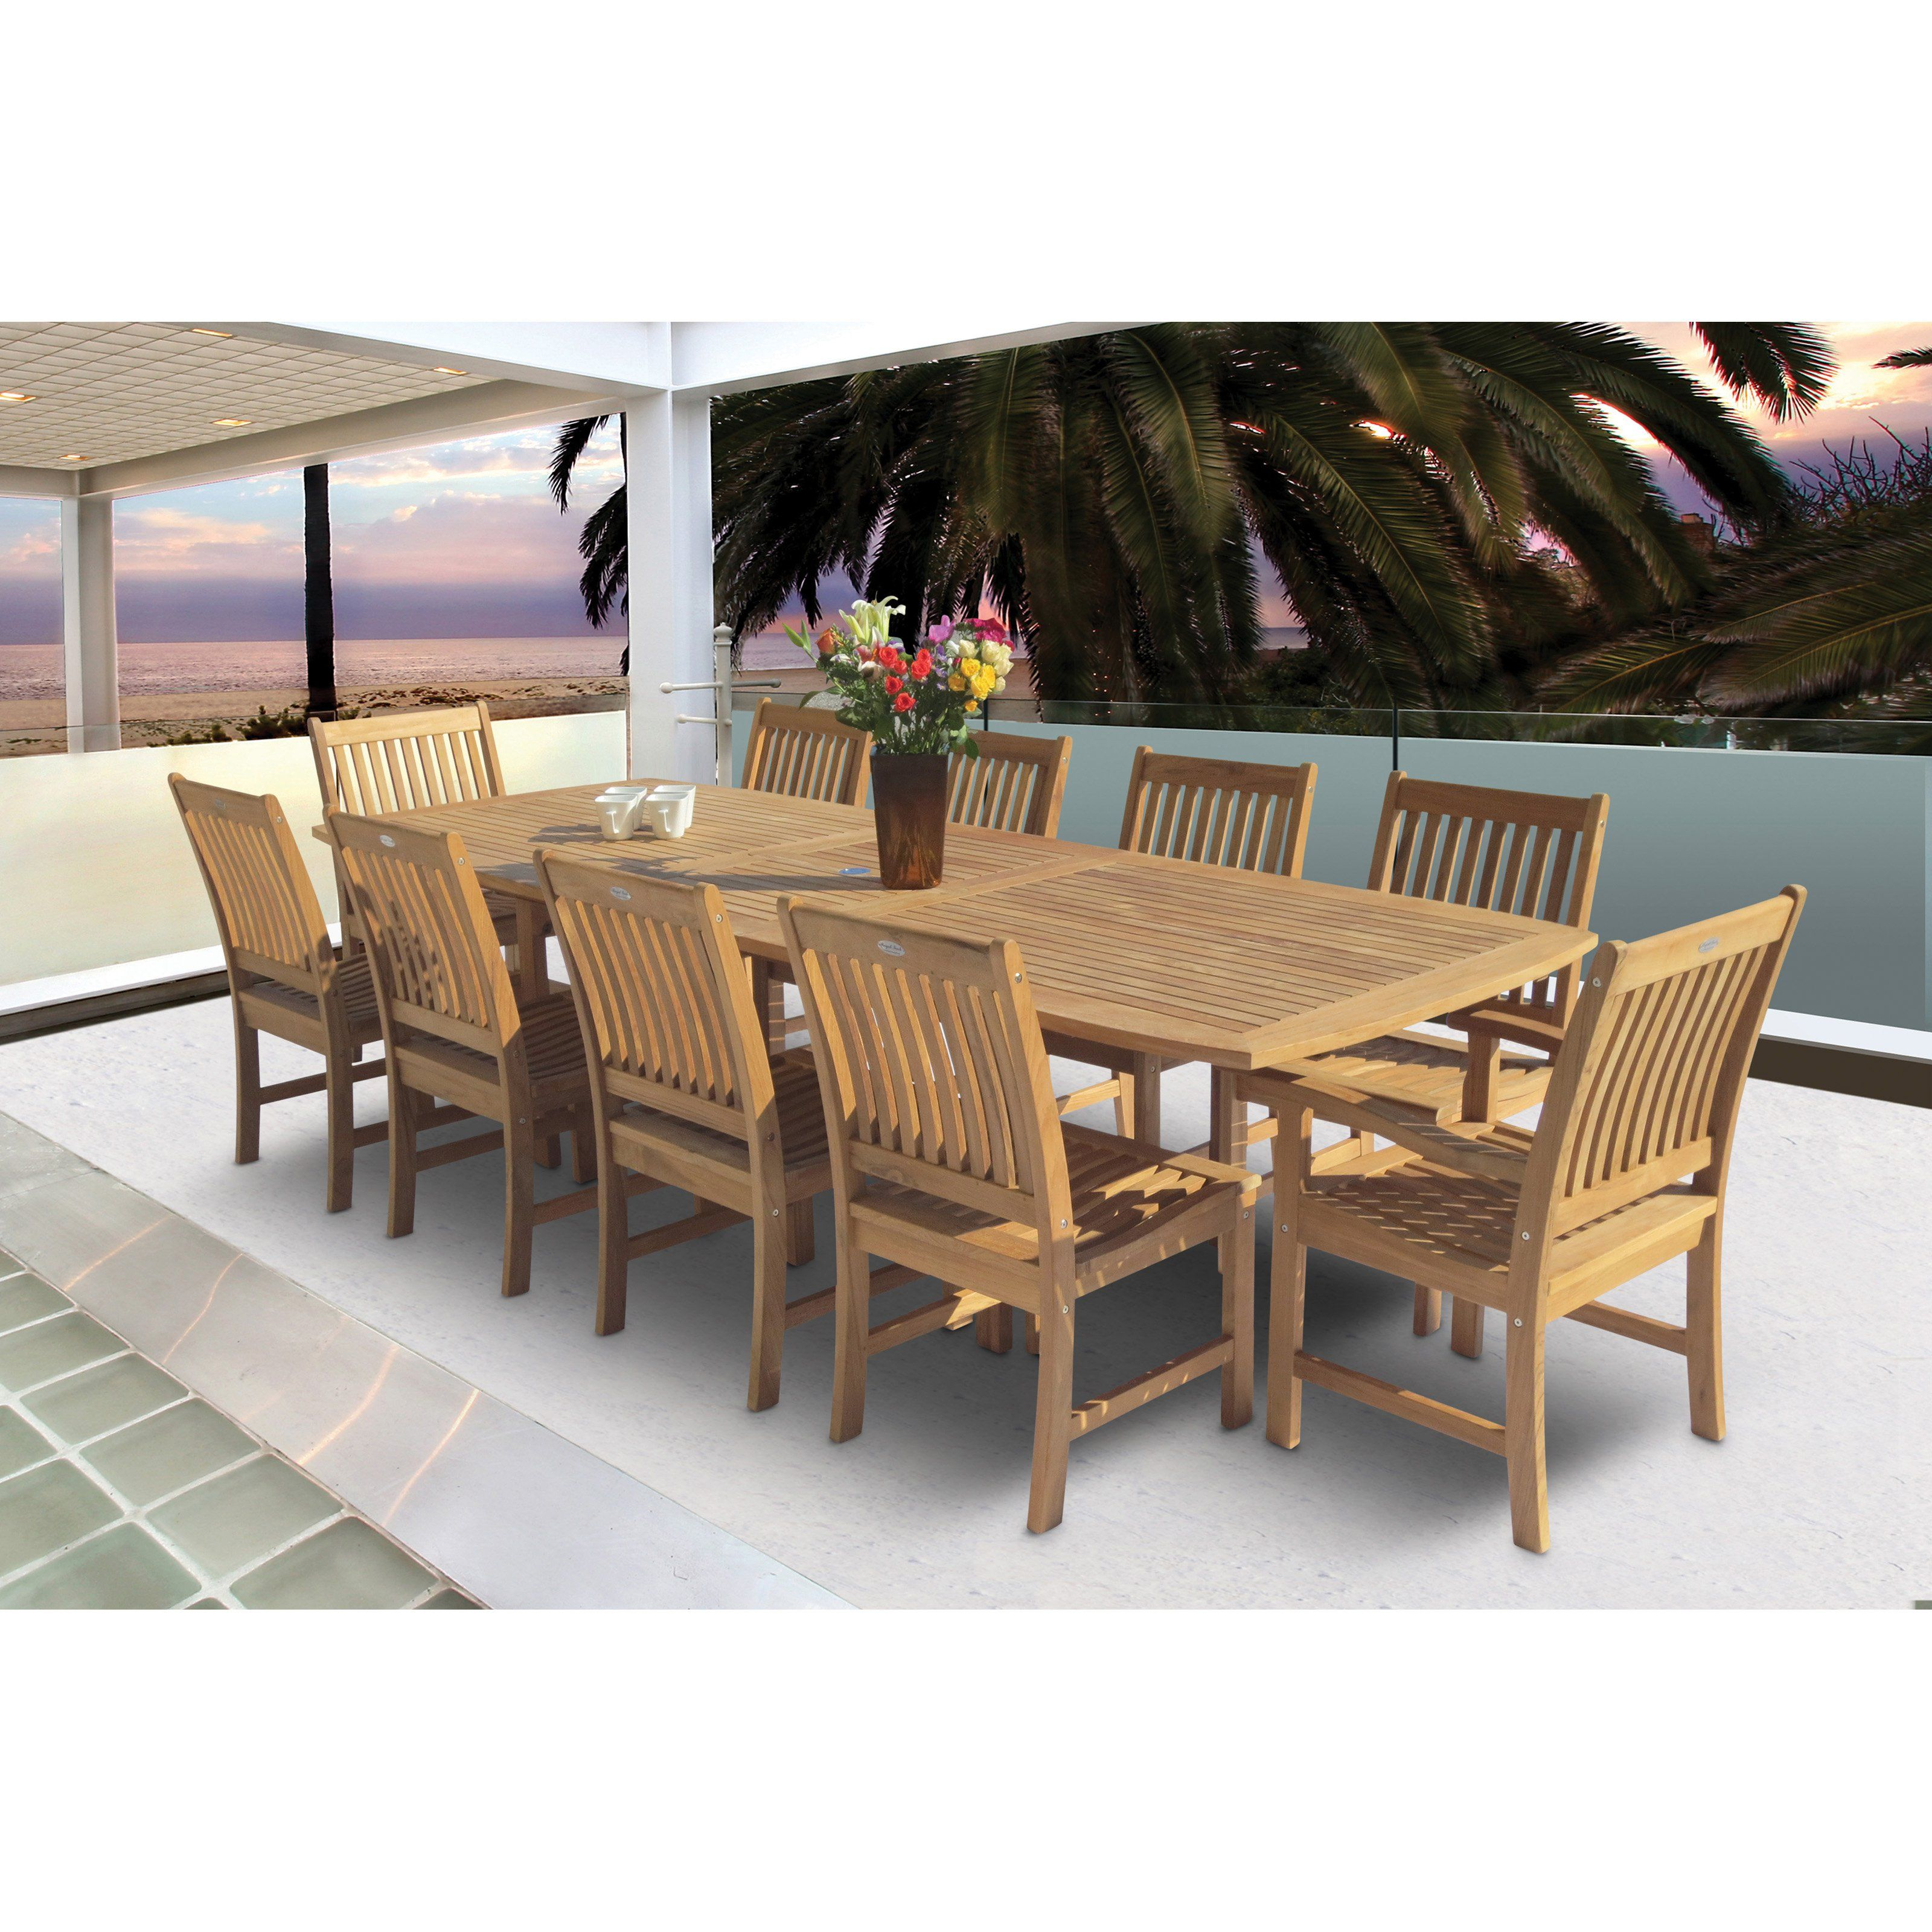 Family Rectangle Extension Compass Patio Dining Set   Seats 10   To Figure  Out What Pirates And Patinas Have In Common, Look No Further Than The Royal  Teak ...